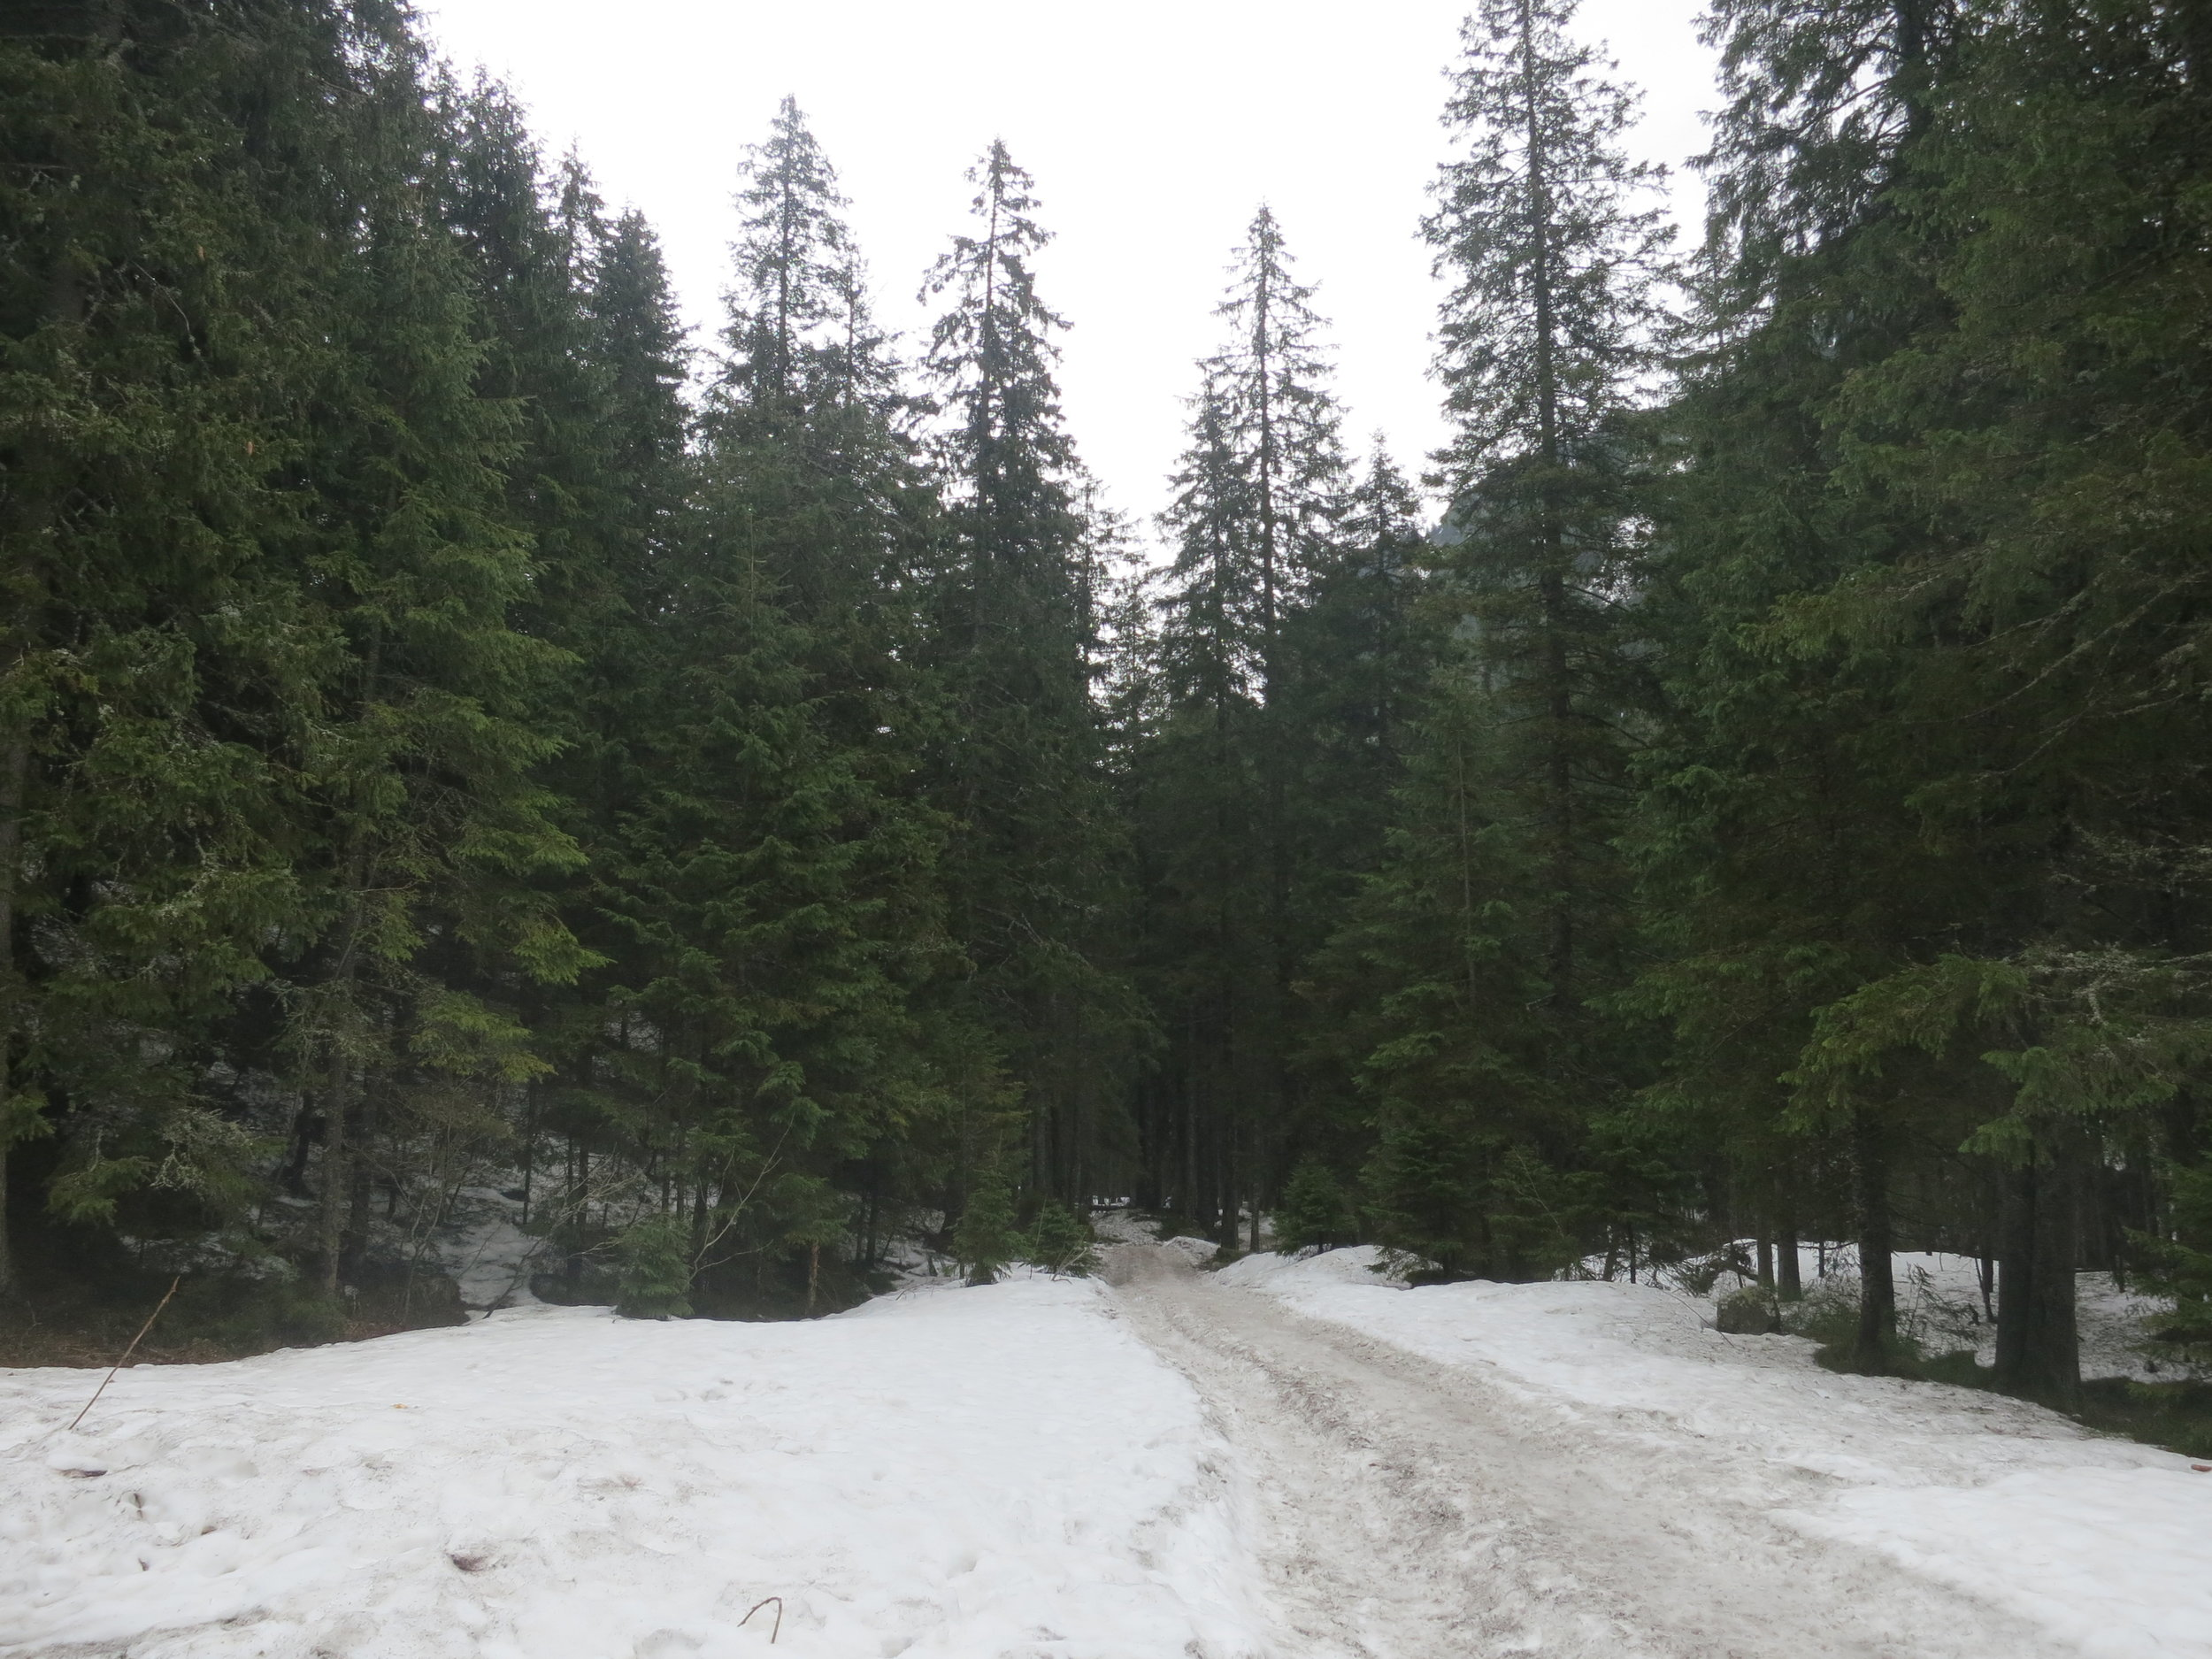 A snowy path through the trees in the Tatra Mountains National Park